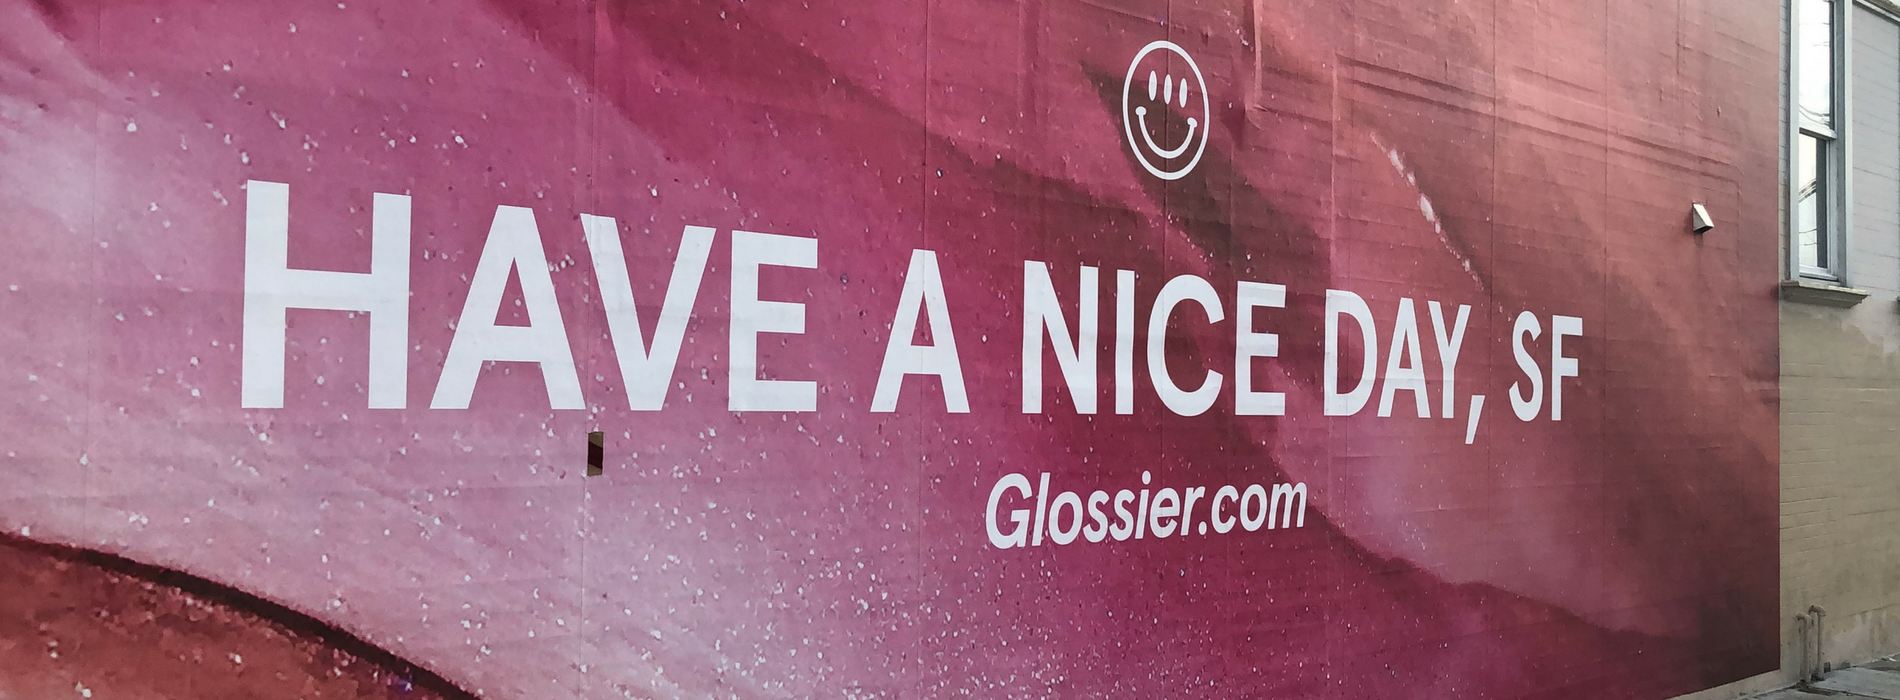 marketing strategy glossier sign